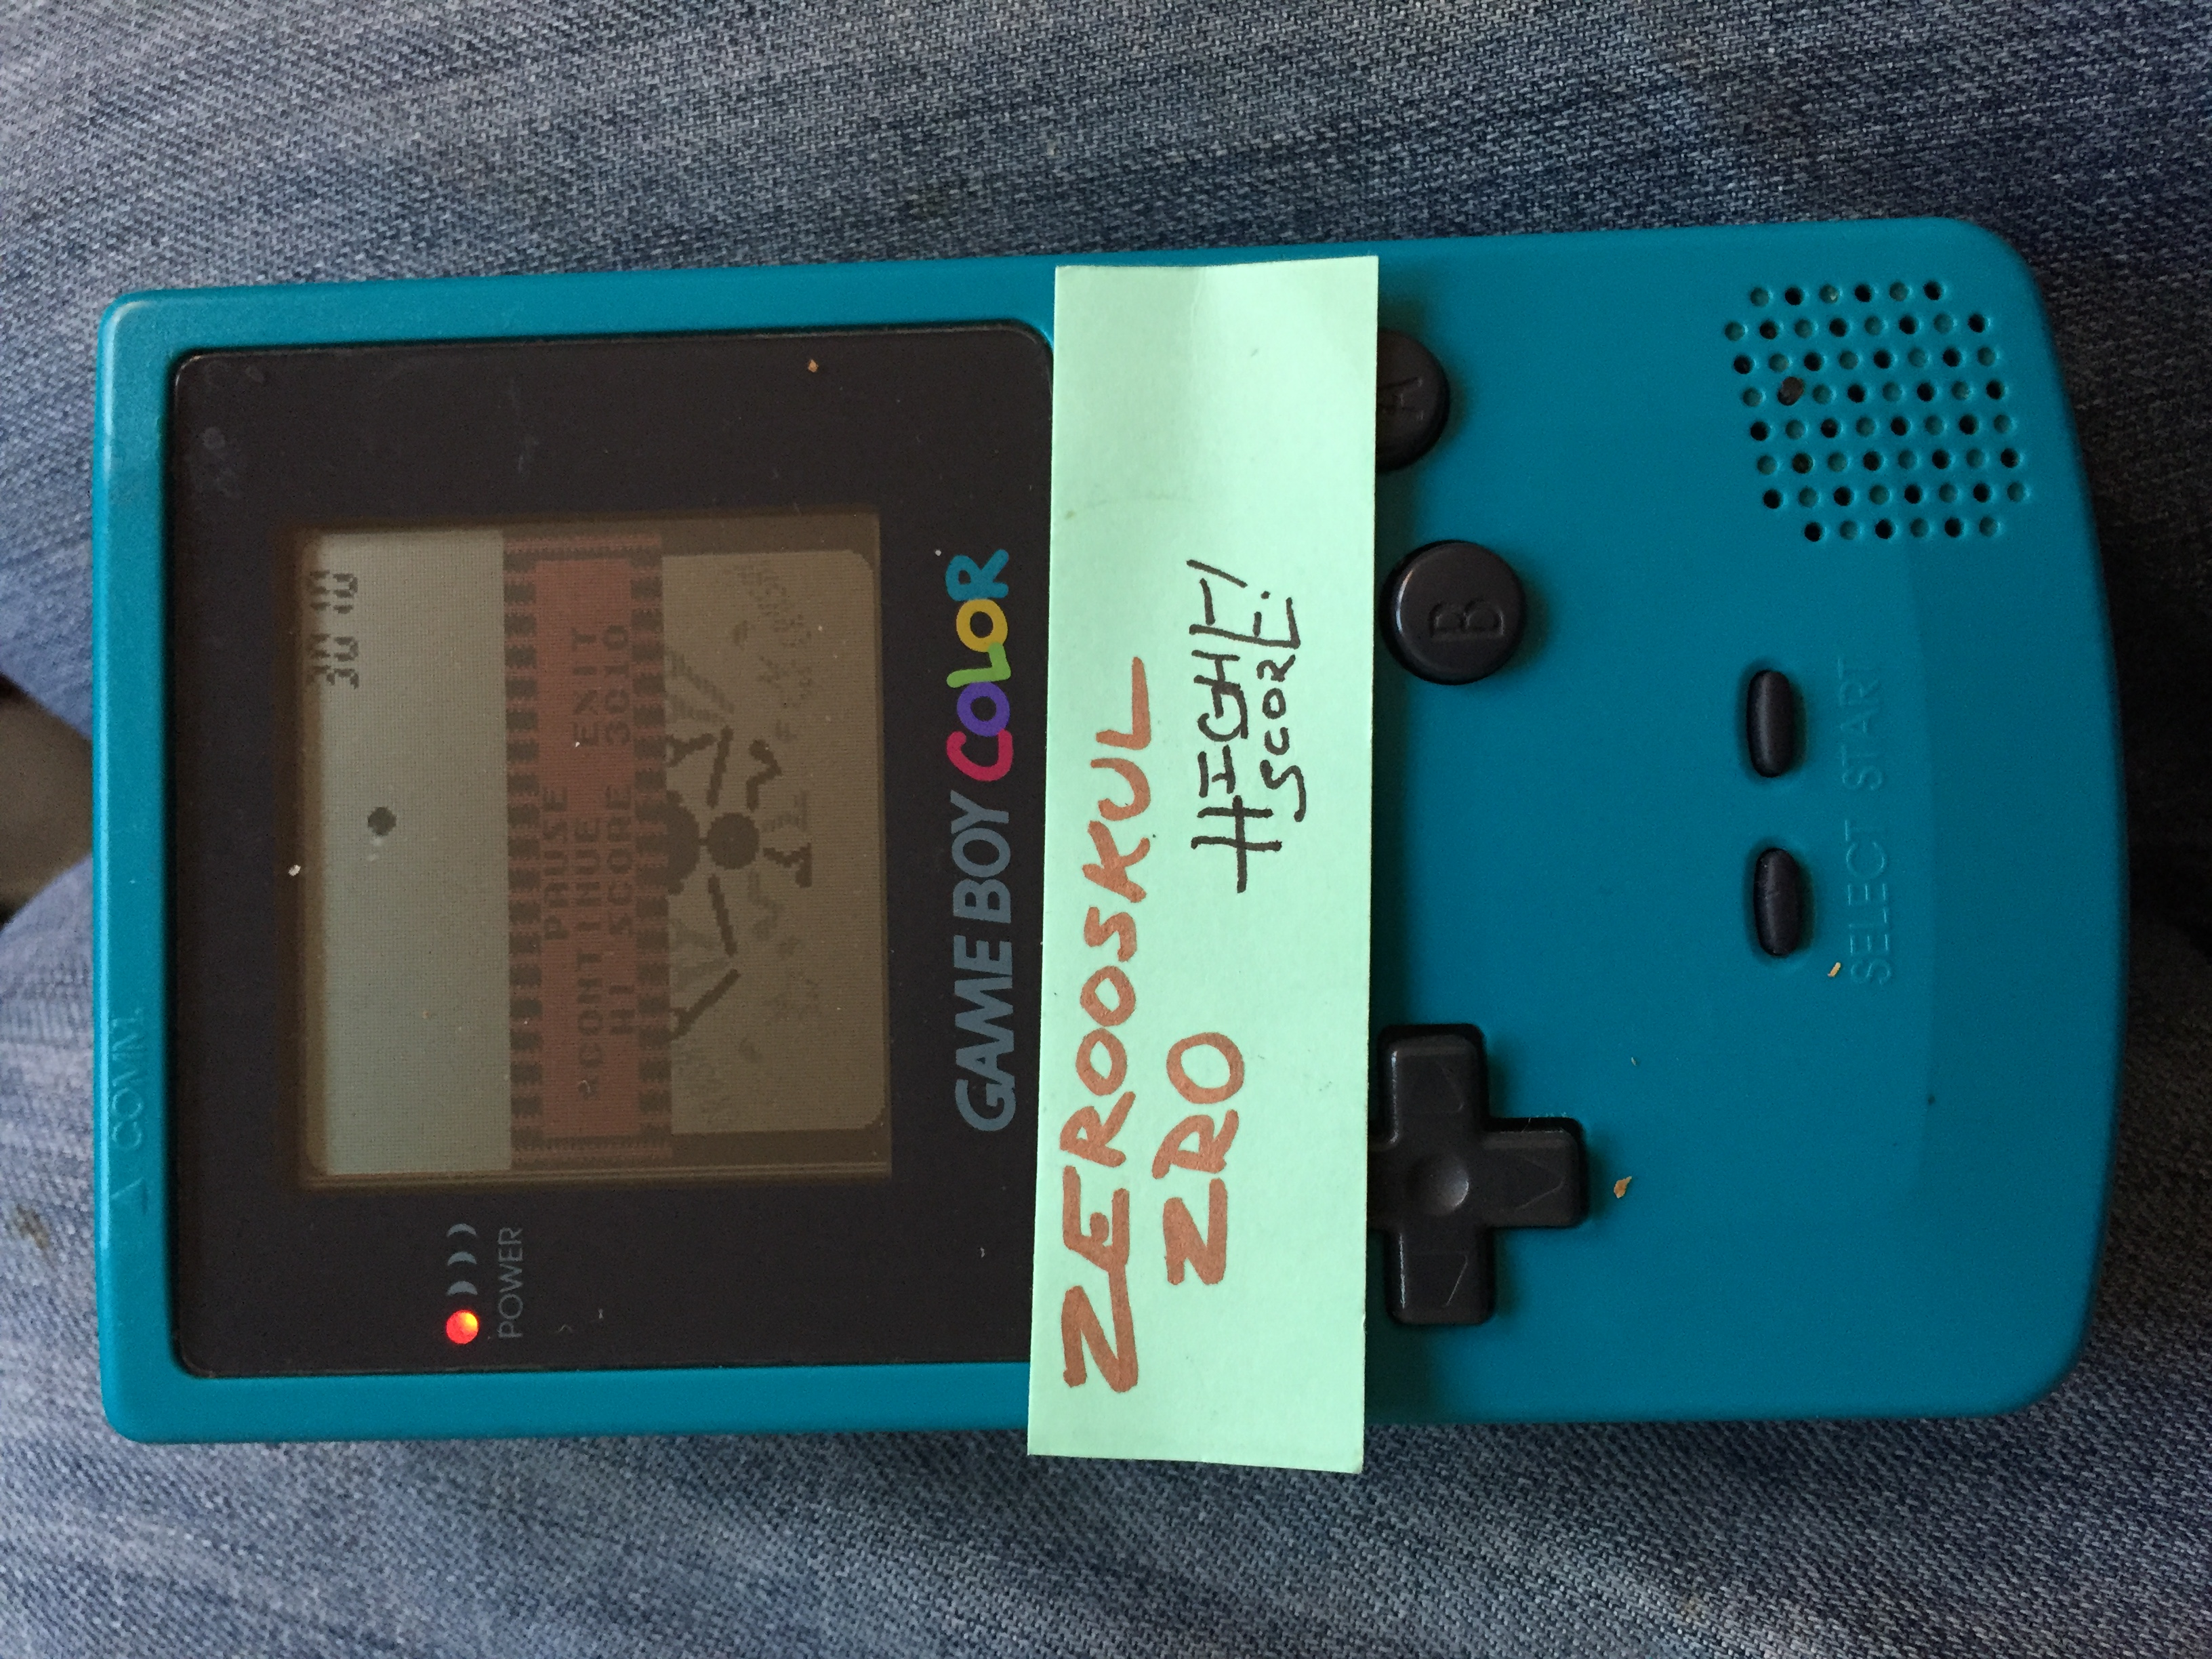 zerooskul: Game & Watch Gallery 2: Ball [Classic: Hard] (Game Boy Color) 3,970 points on 2018-06-30 18:09:03